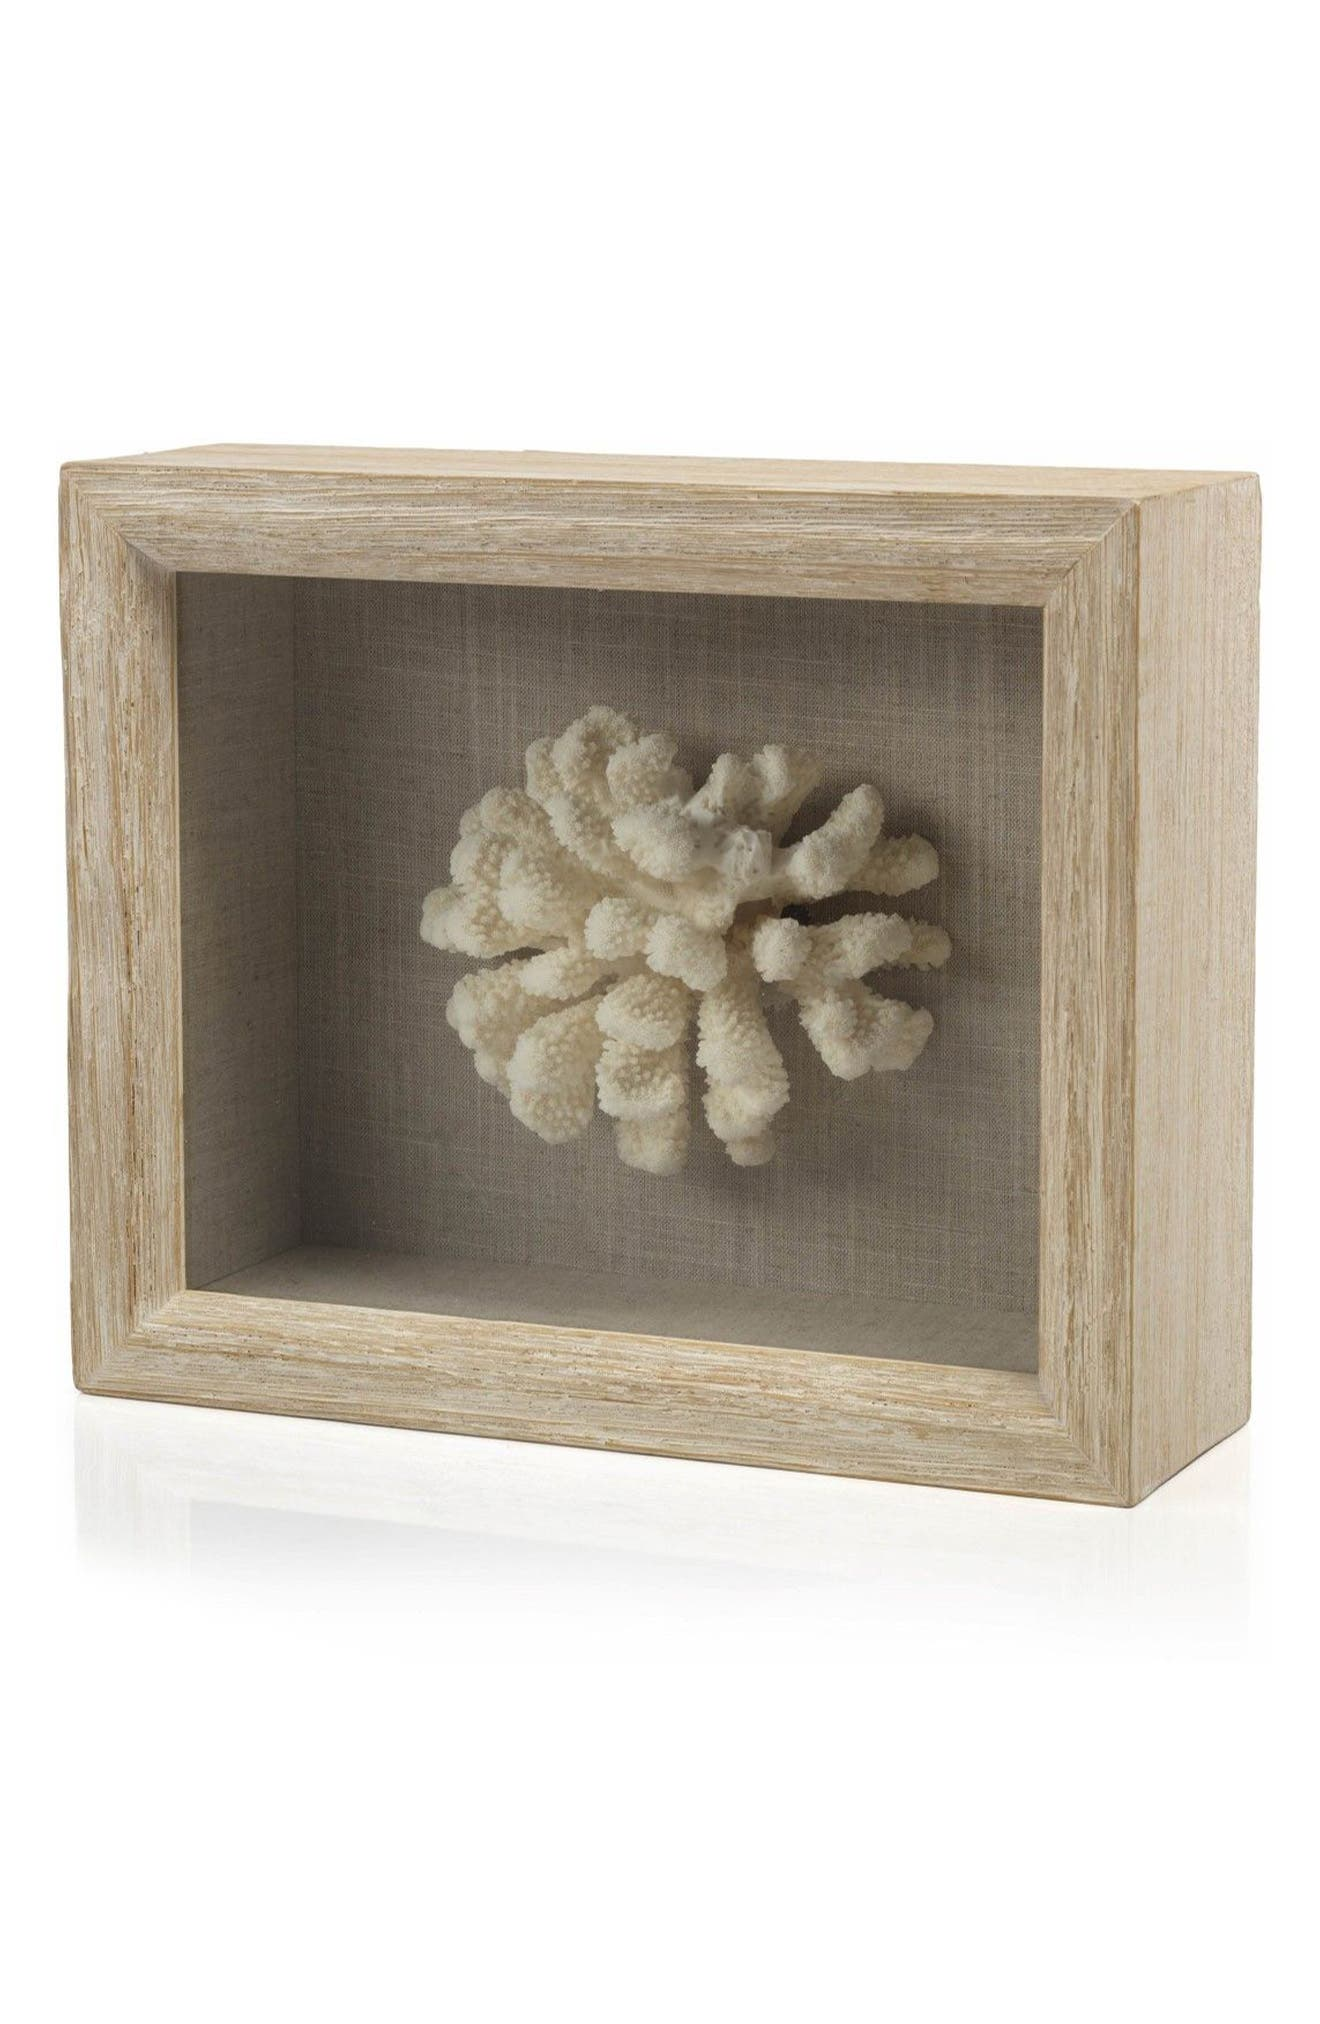 Cat's Paw Coral Shadow Box Art,                         Main,                         color, Off-White/ Brown/ Beige